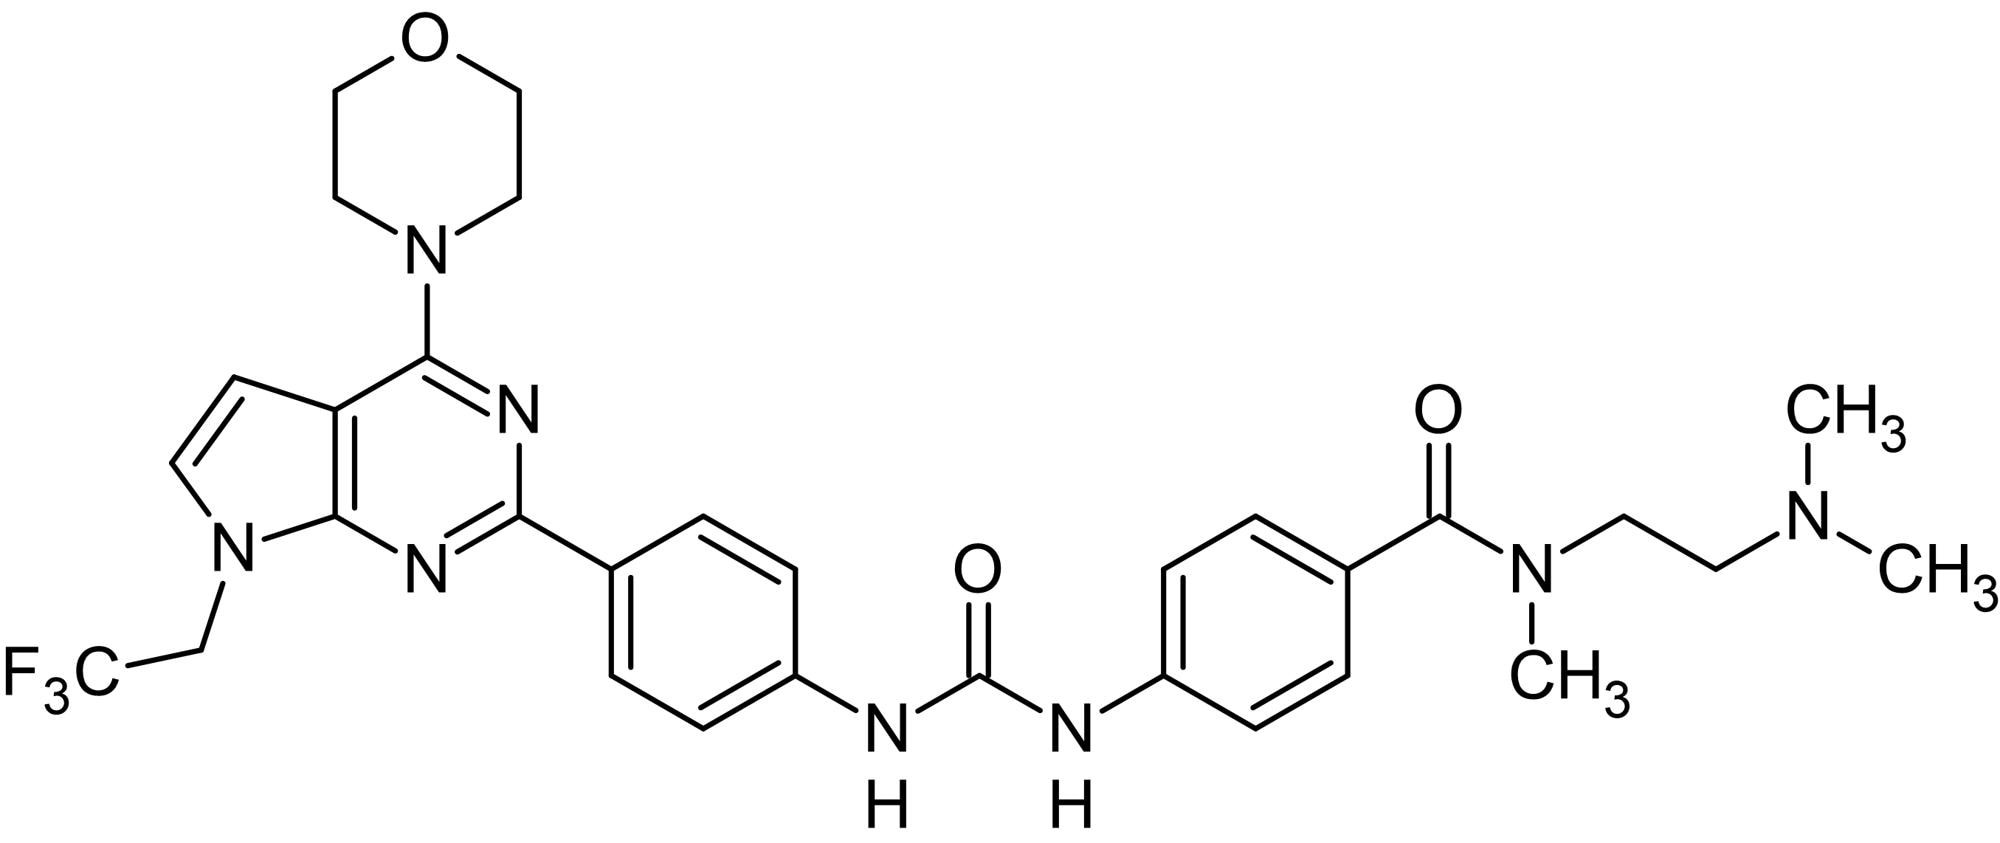 Chemical Structure - CAY10626, PI3Kalpha/mTOR inhibitor (ab120903)